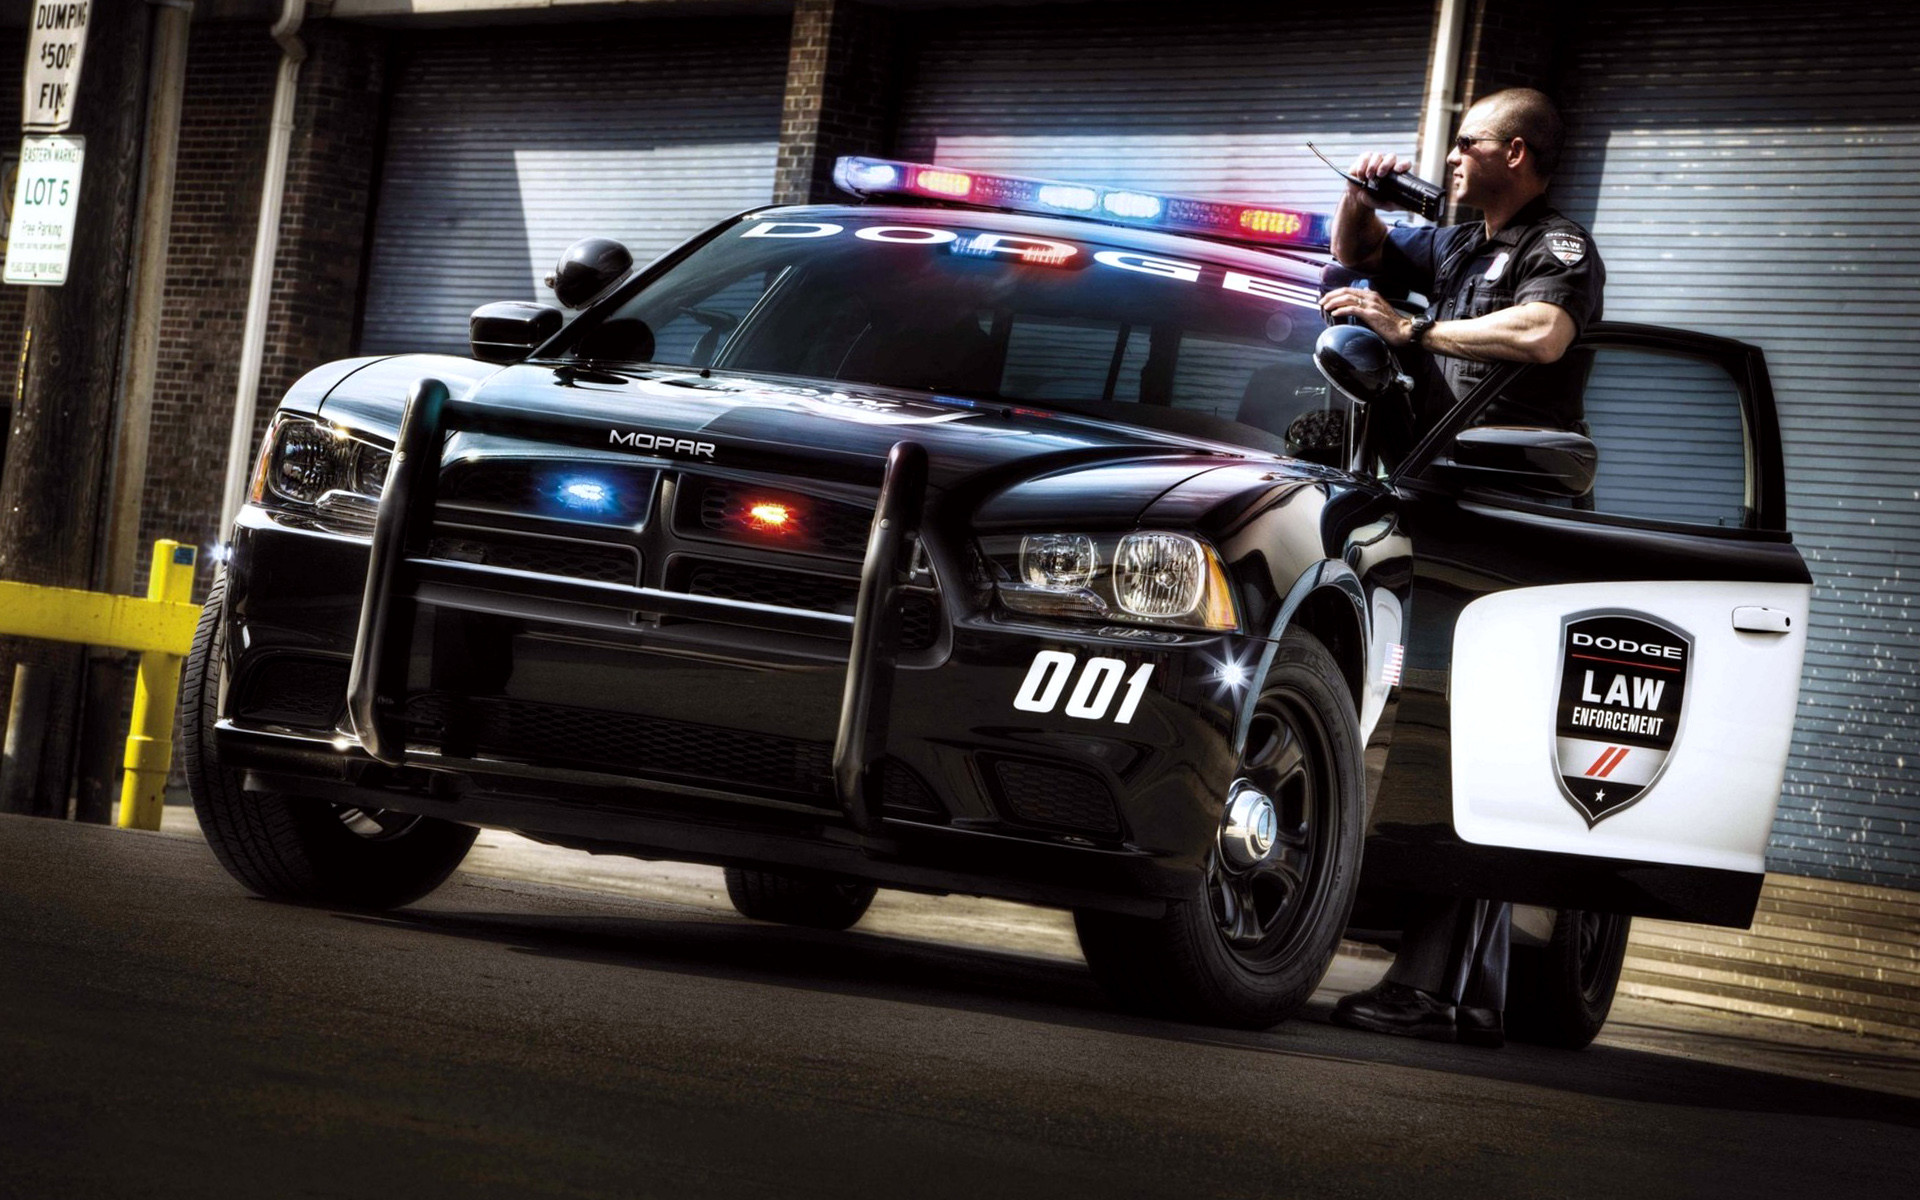 1920x1200 Category : Cars Wallpapers » Cool Police Car Action - px